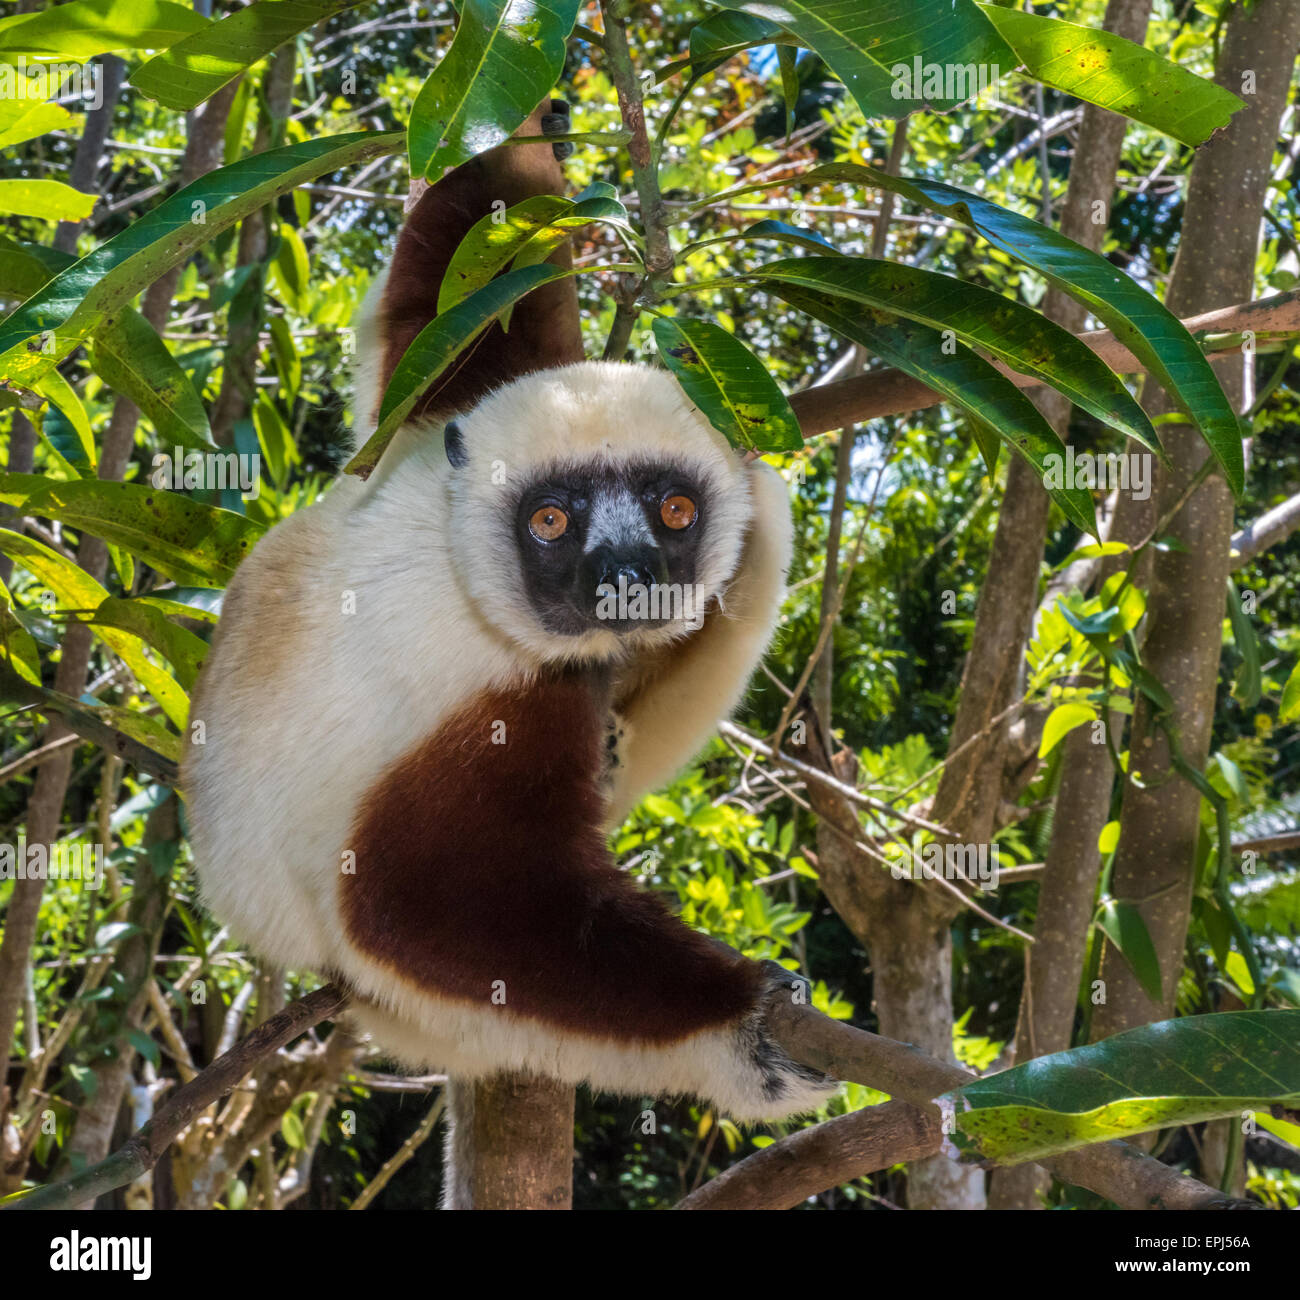 Sifaka, dancing lemur of Madagascar - Stock Image